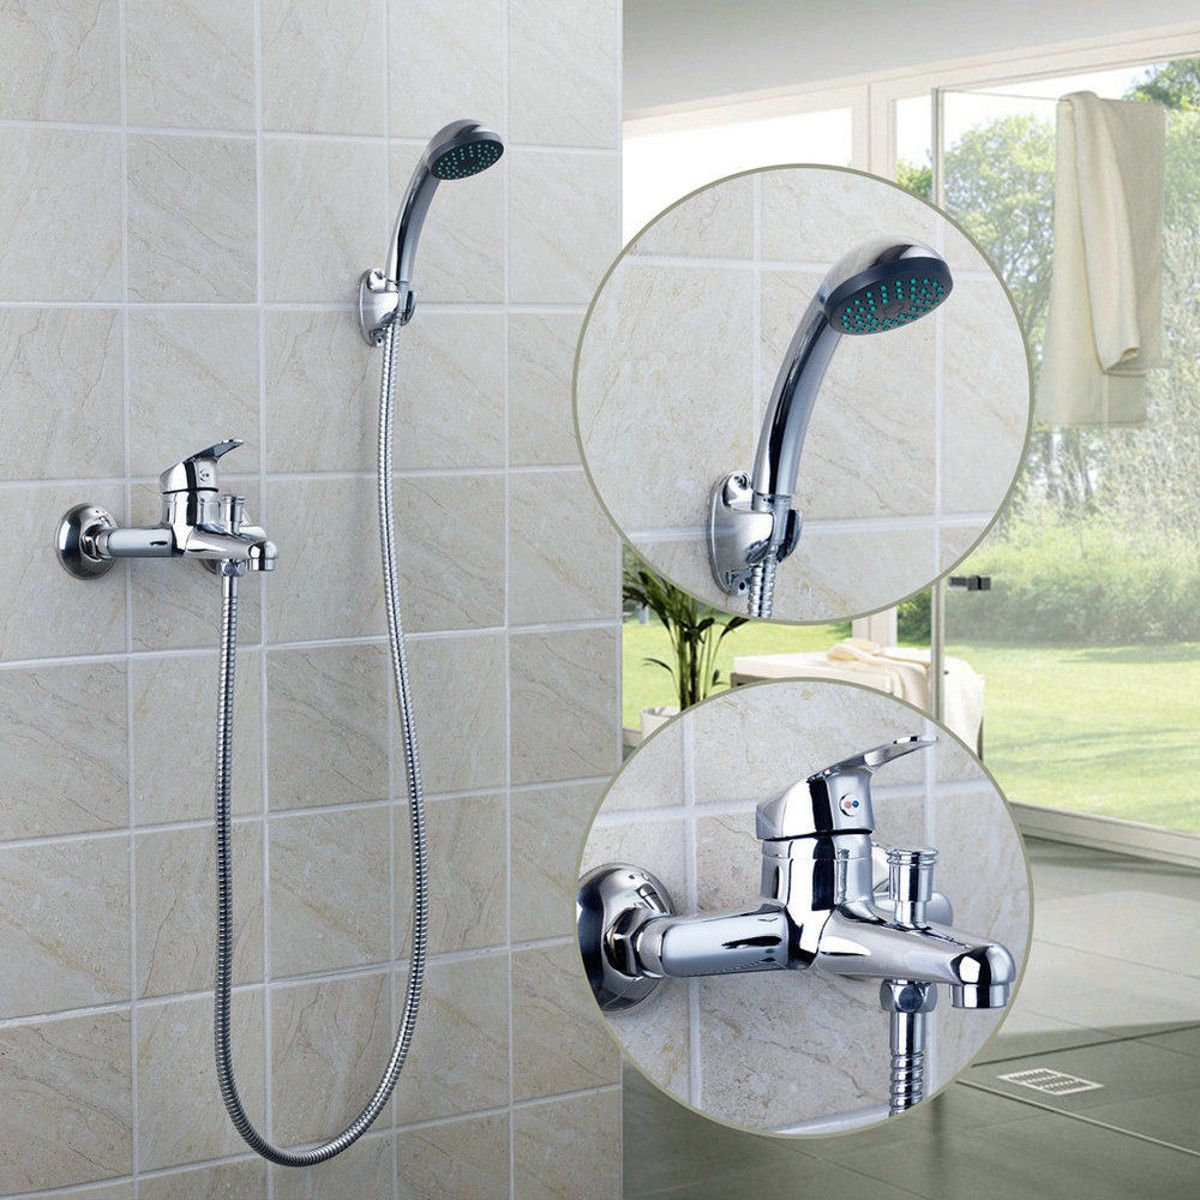 Chrome Wall Mounted Bathroom Bathtub Shower Faucet Set Mixer With ...